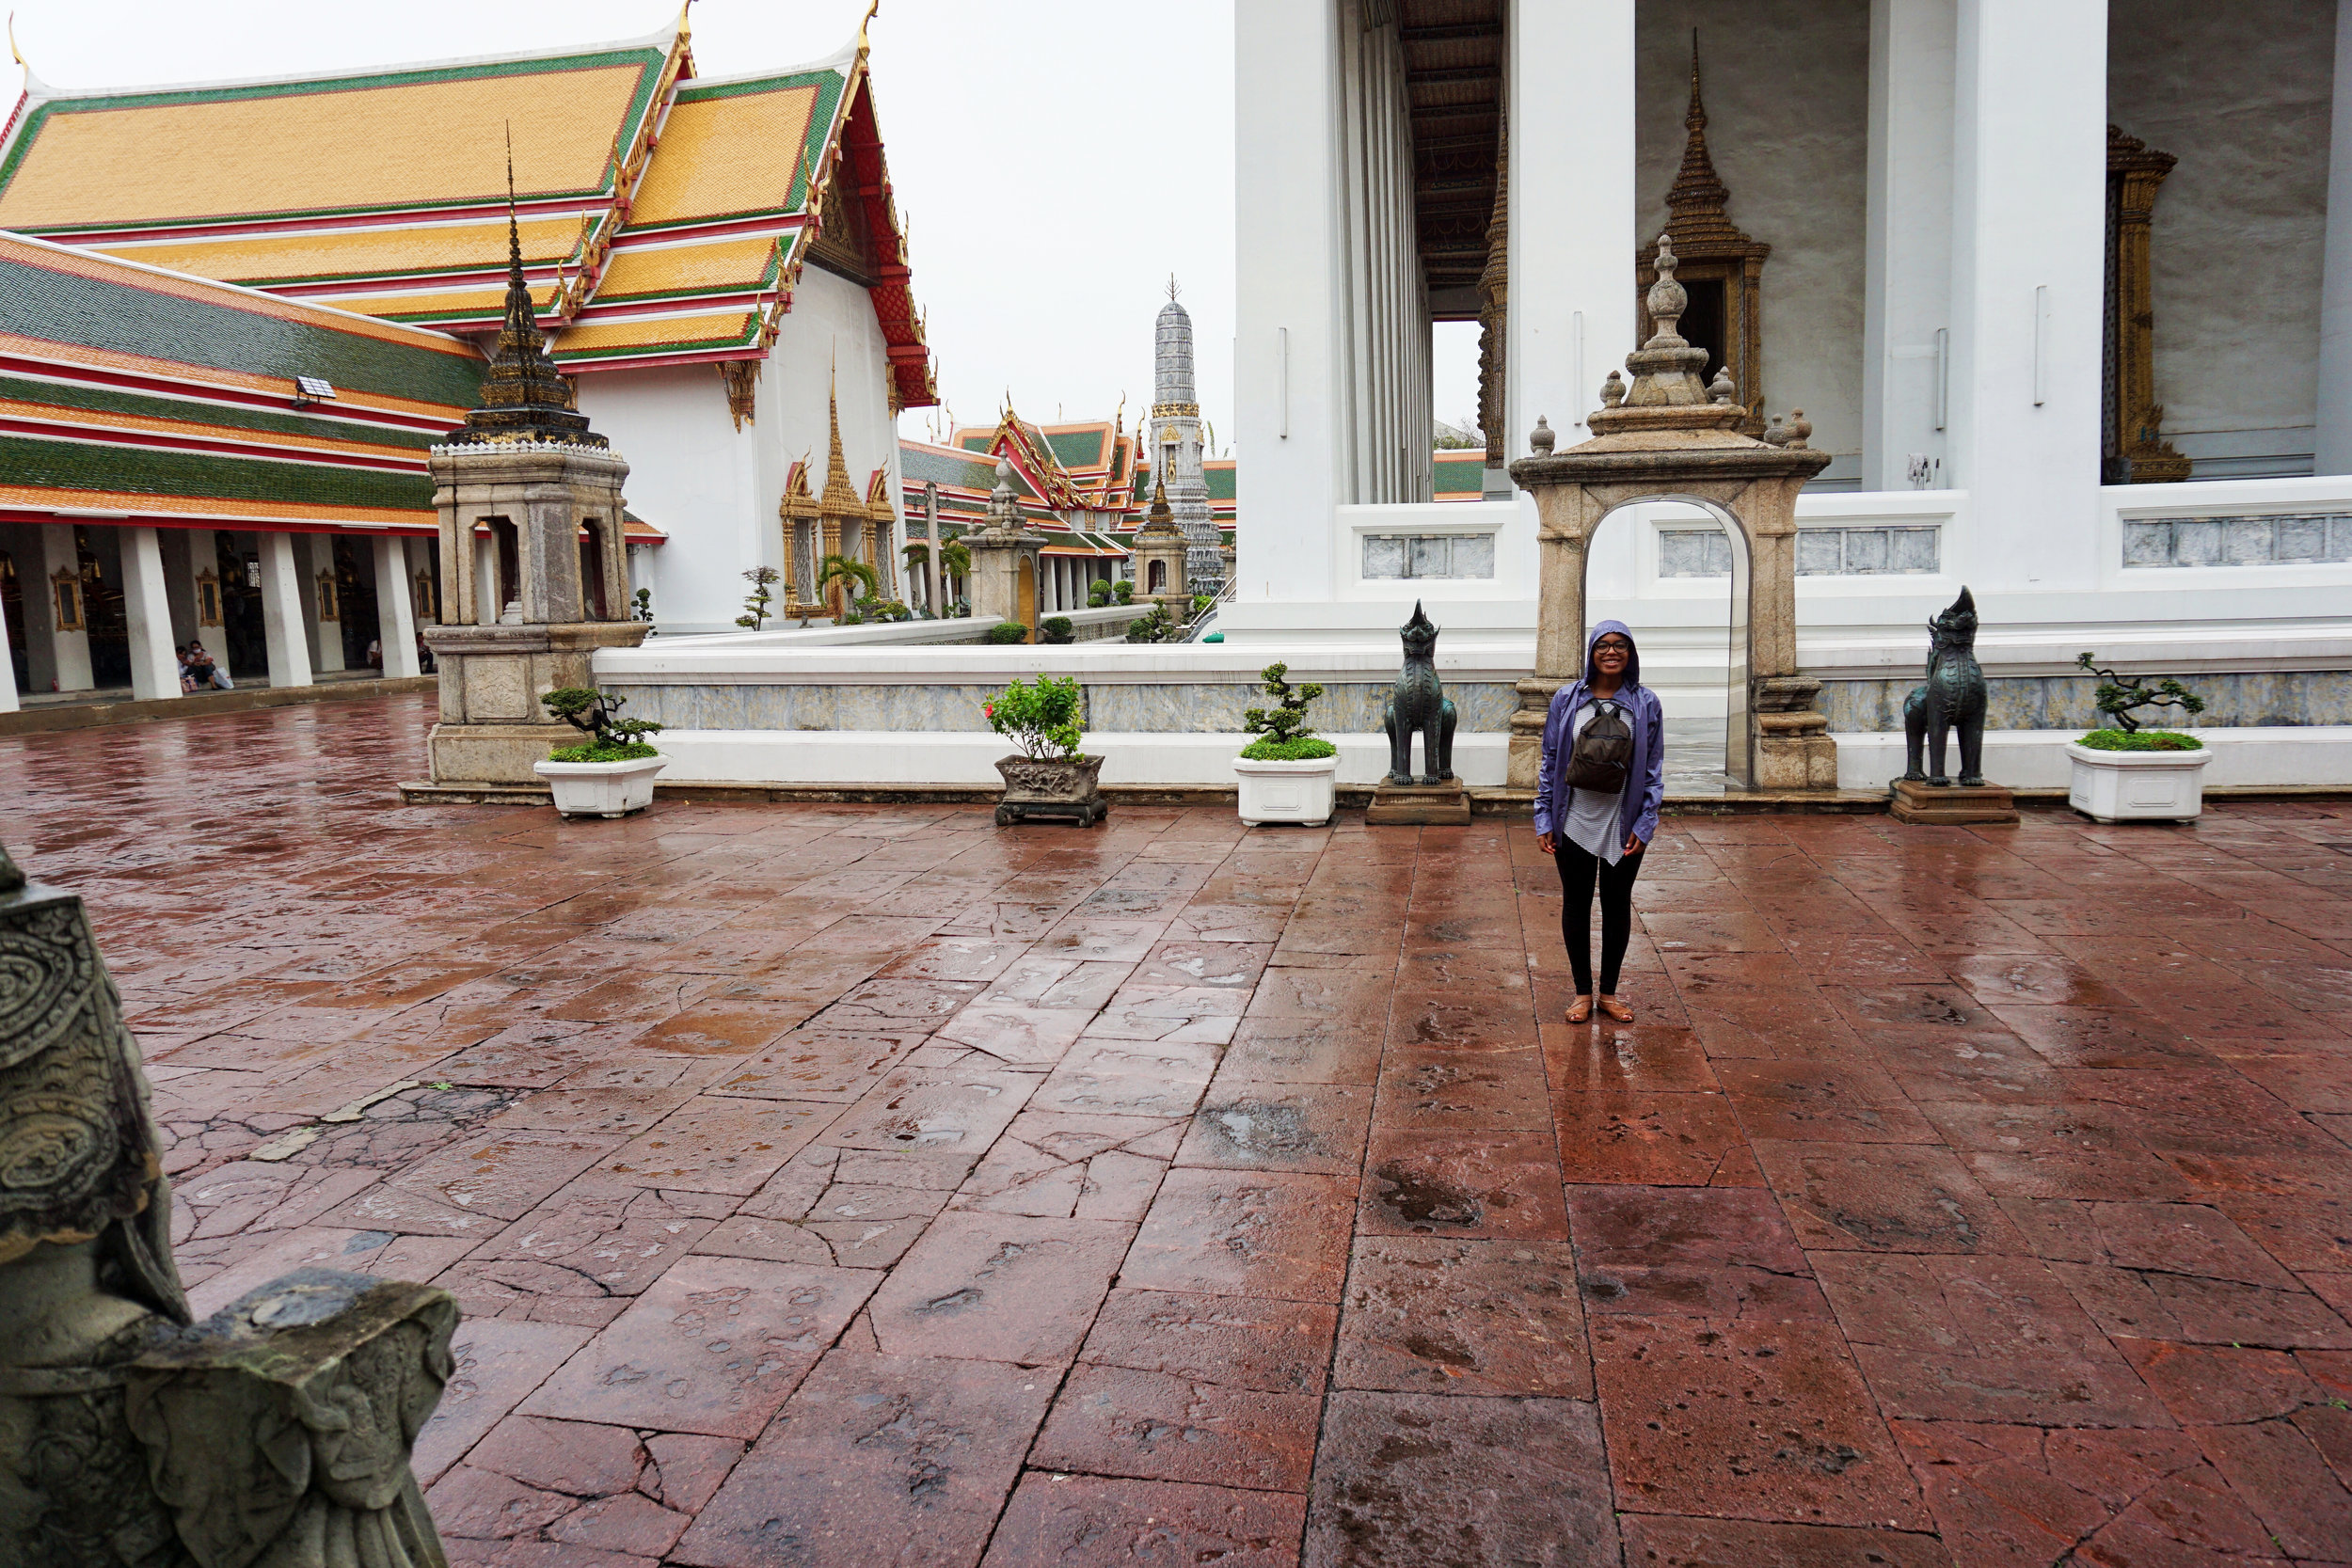 Rainy day at Wat Pho in Thailand